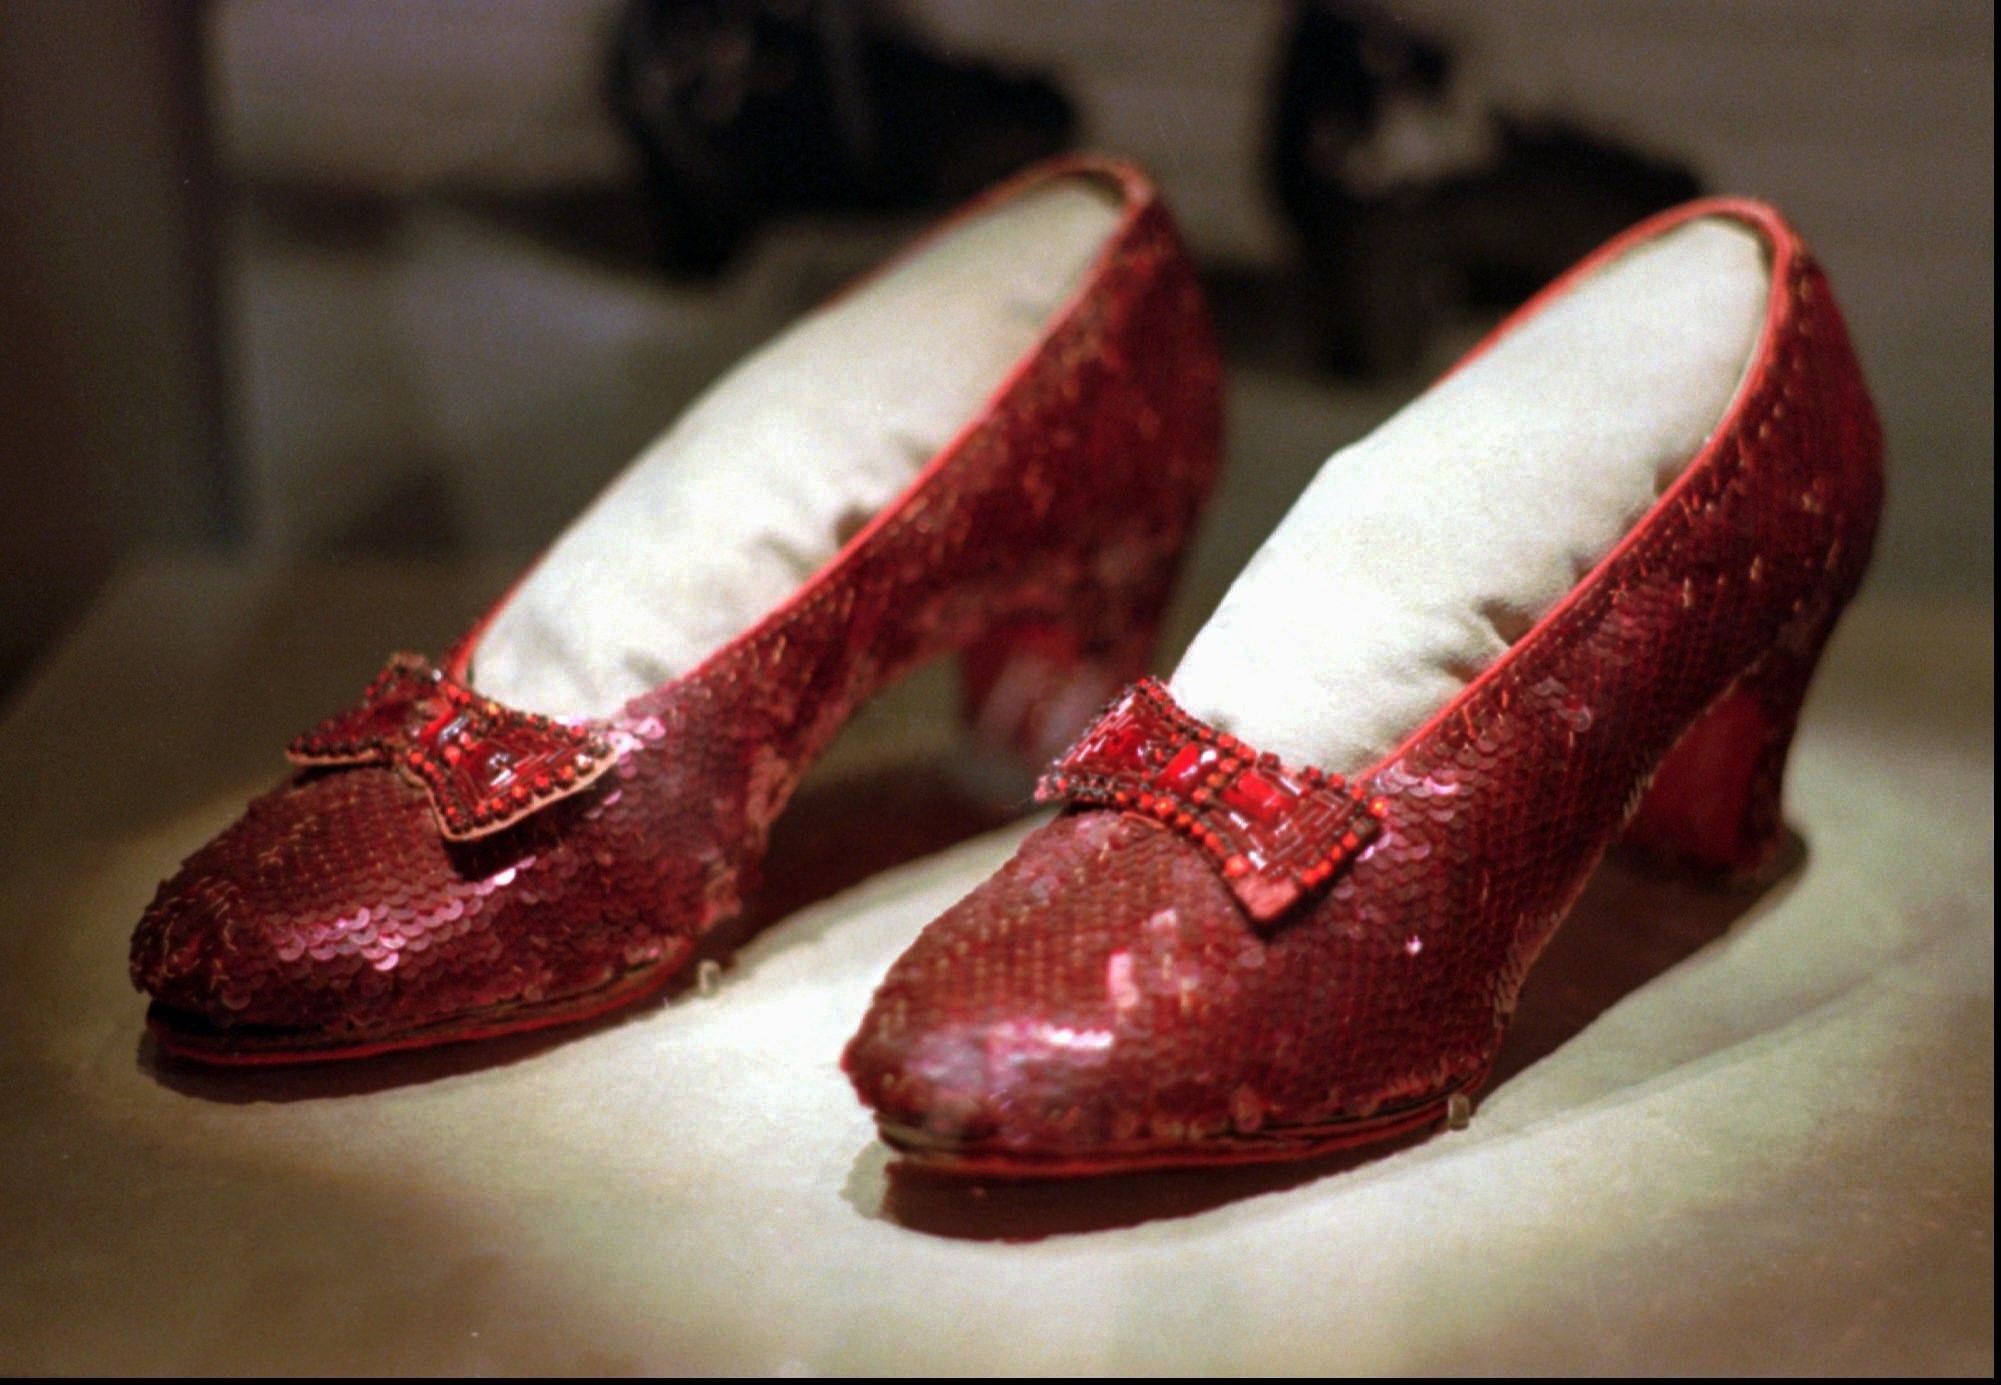 The ruby slippers worn by Judy Garland in the 1939 film �The Wizard of Oz� are shown on display during a media tour of the �America�s Smithsonian� exhibition in Kansas City, Mo. The ruby slippers are leaving the U.S. on their first international journey to London�s Victoria and Albert Museum.